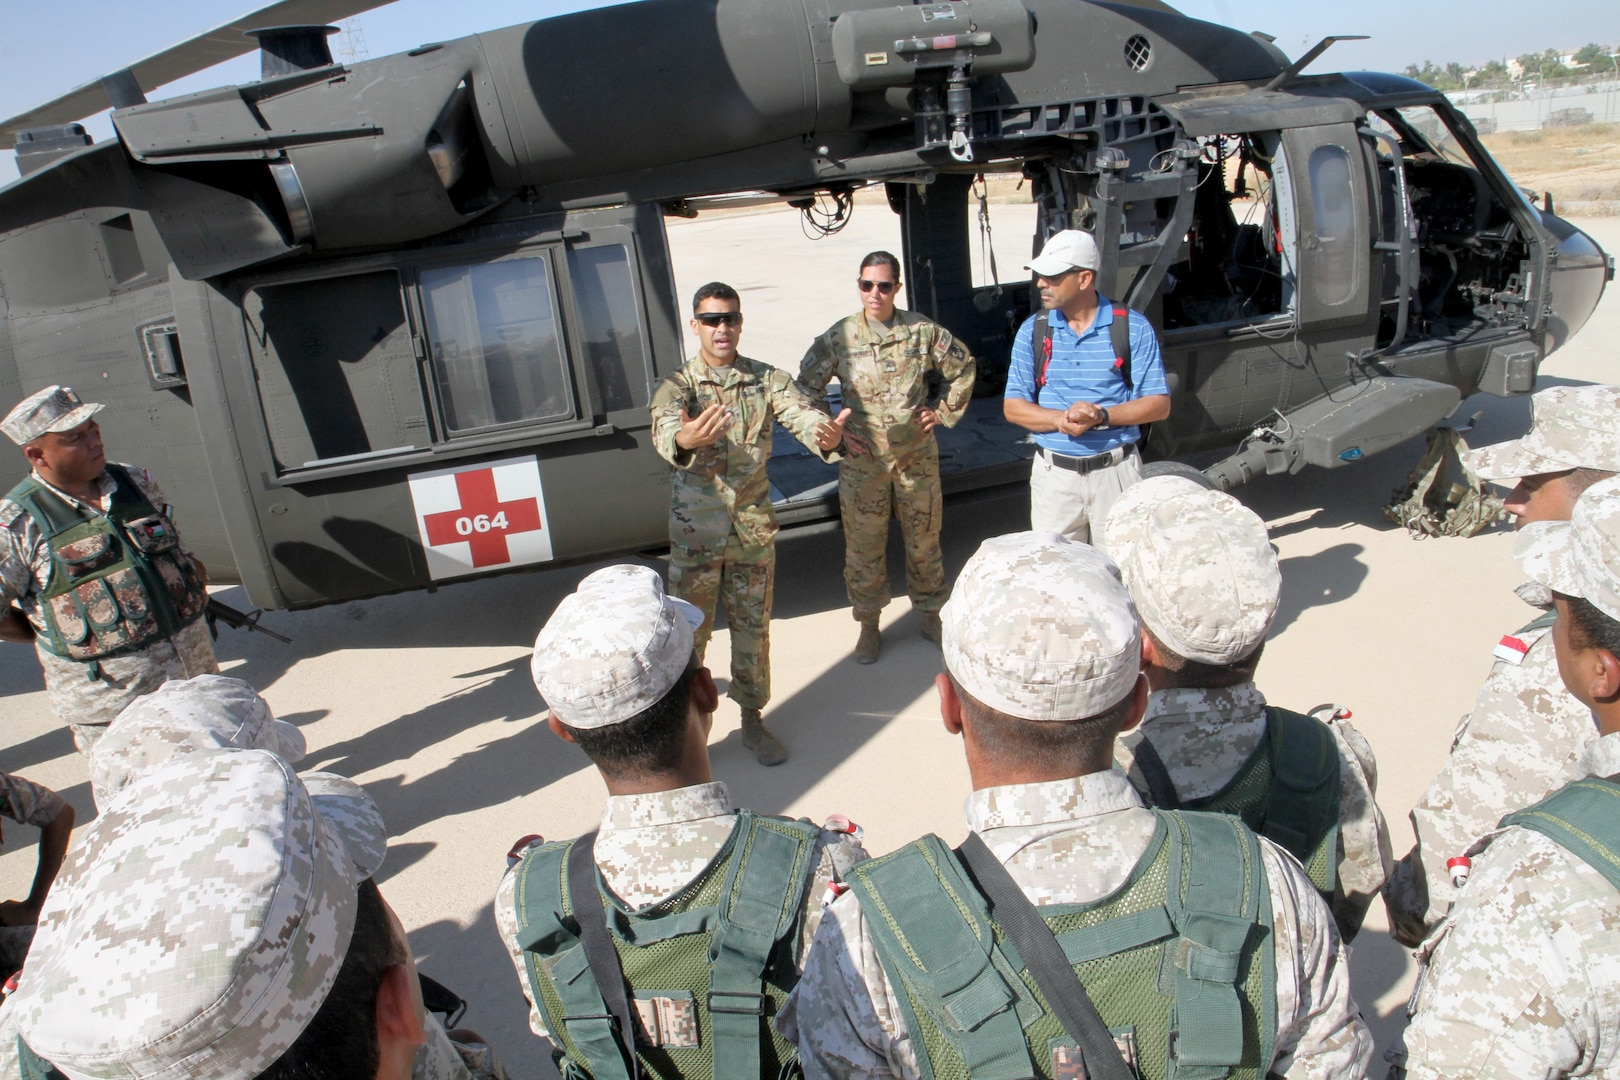 U.S. Army Sgt. Ignacio Aparicio, center, crew chief, Golf Company, 5th Battalion, 159th Aviation Regiment, talks to members of Jordan Armed Forces' 7th Mechanized Infantry Battalion about hand signals and casualty loading procedures during medical evacuation training in preparation for exercise Eager Lion 2019, Aug. 21, 2019. This multinational exercise is U.S. Central Command's premiere exercise in the Levant region and is a major training event that provides U.S. forces, Jordan Armed Forces and 28 other participating nations the opportunity to improve their collective ability to plan and operate in a coalition-type environment. (U.S. Army Reserve photo by Sgt. Zach Mott)